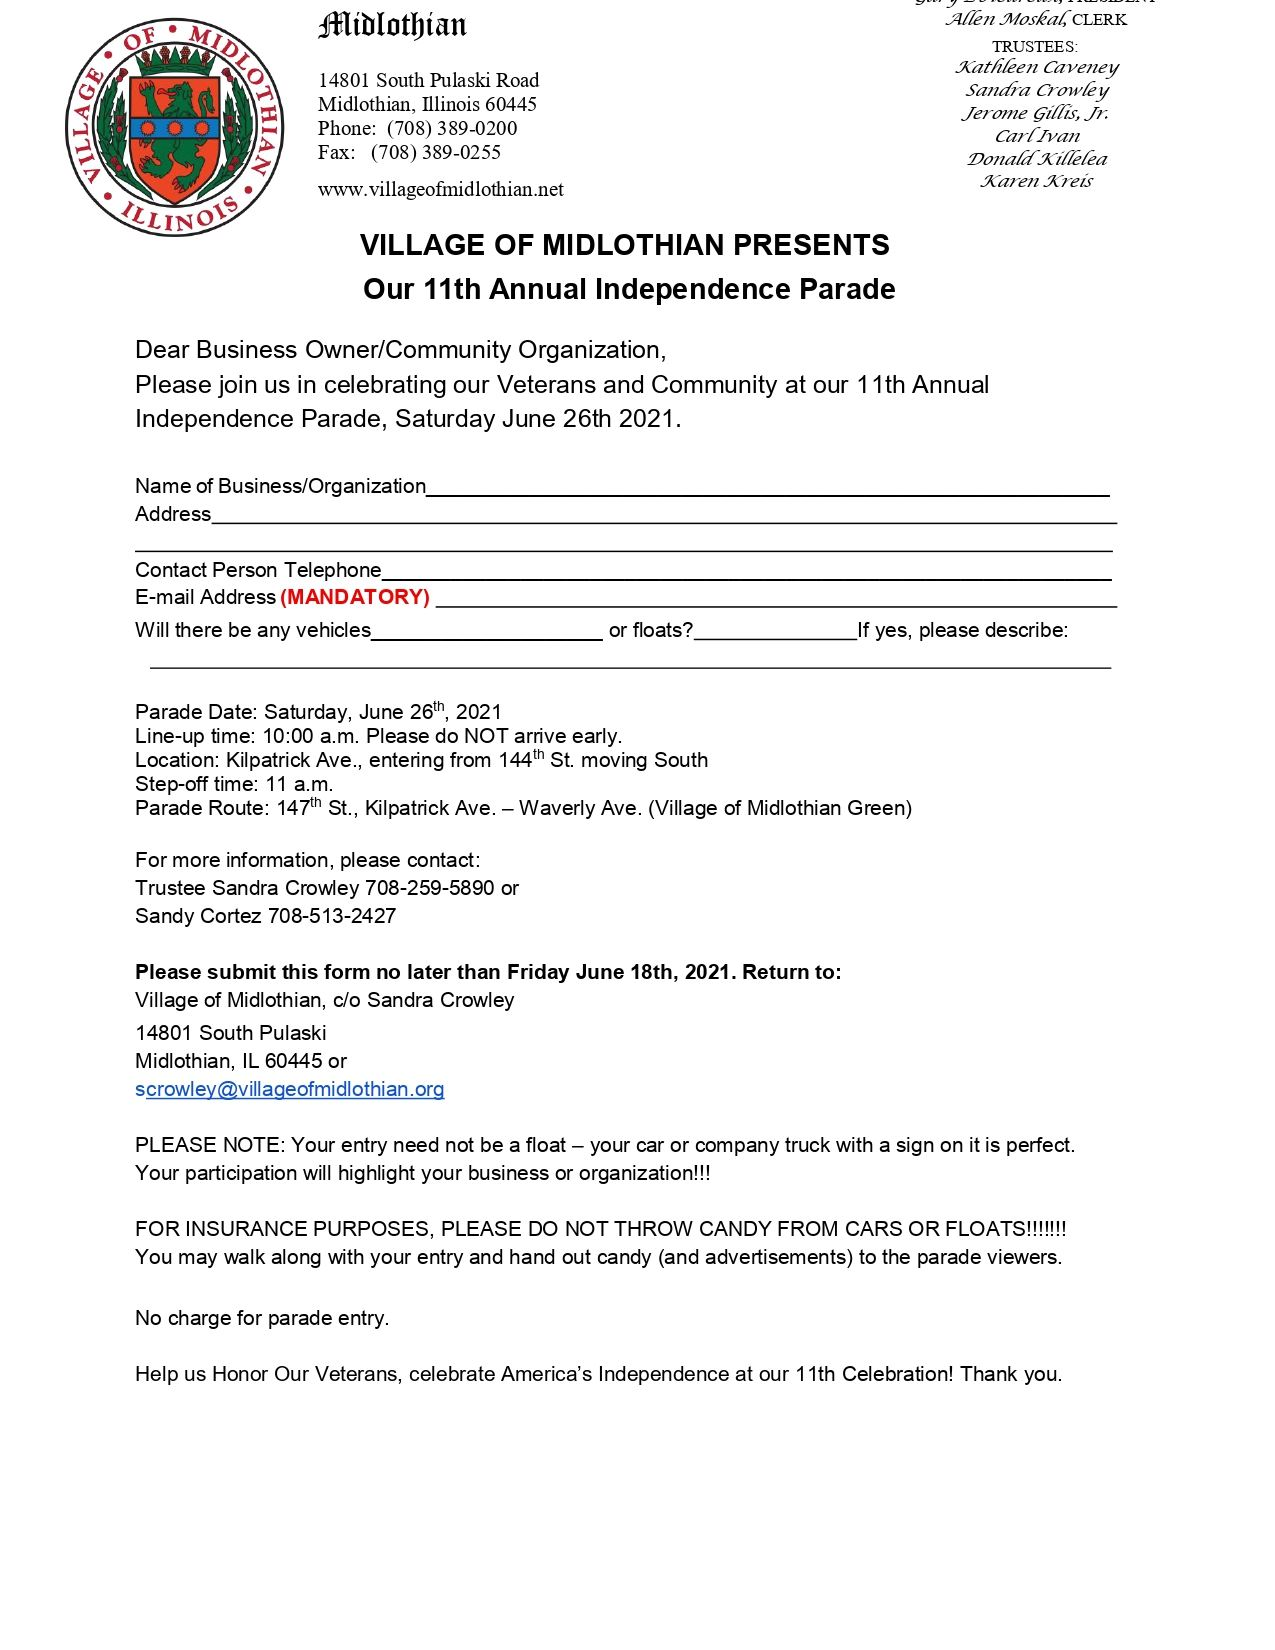 2021 Midlothian Parade Entry Form_page-0001